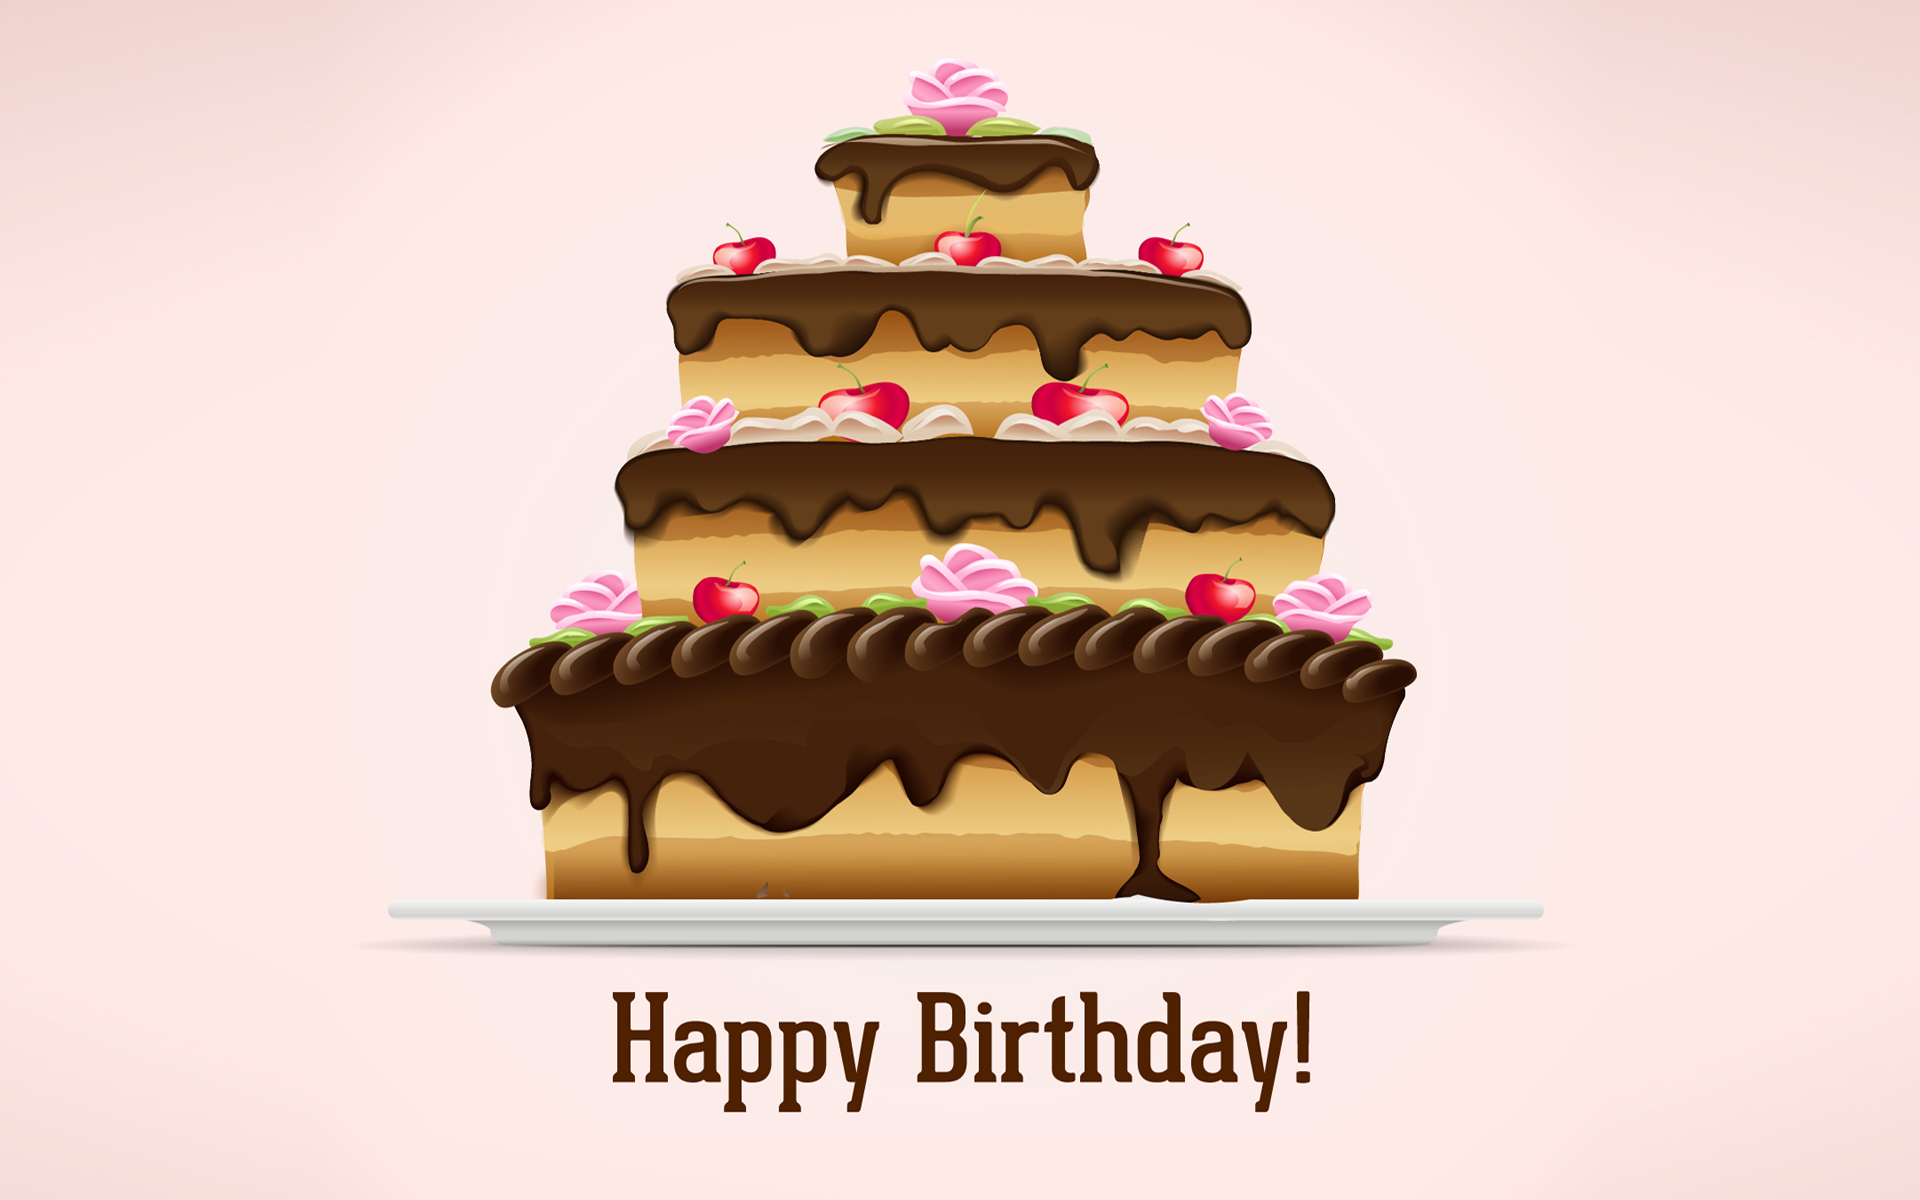 wallpaper kek birthday ; Happy-Birthday-Chocolate-Cake-HD-images